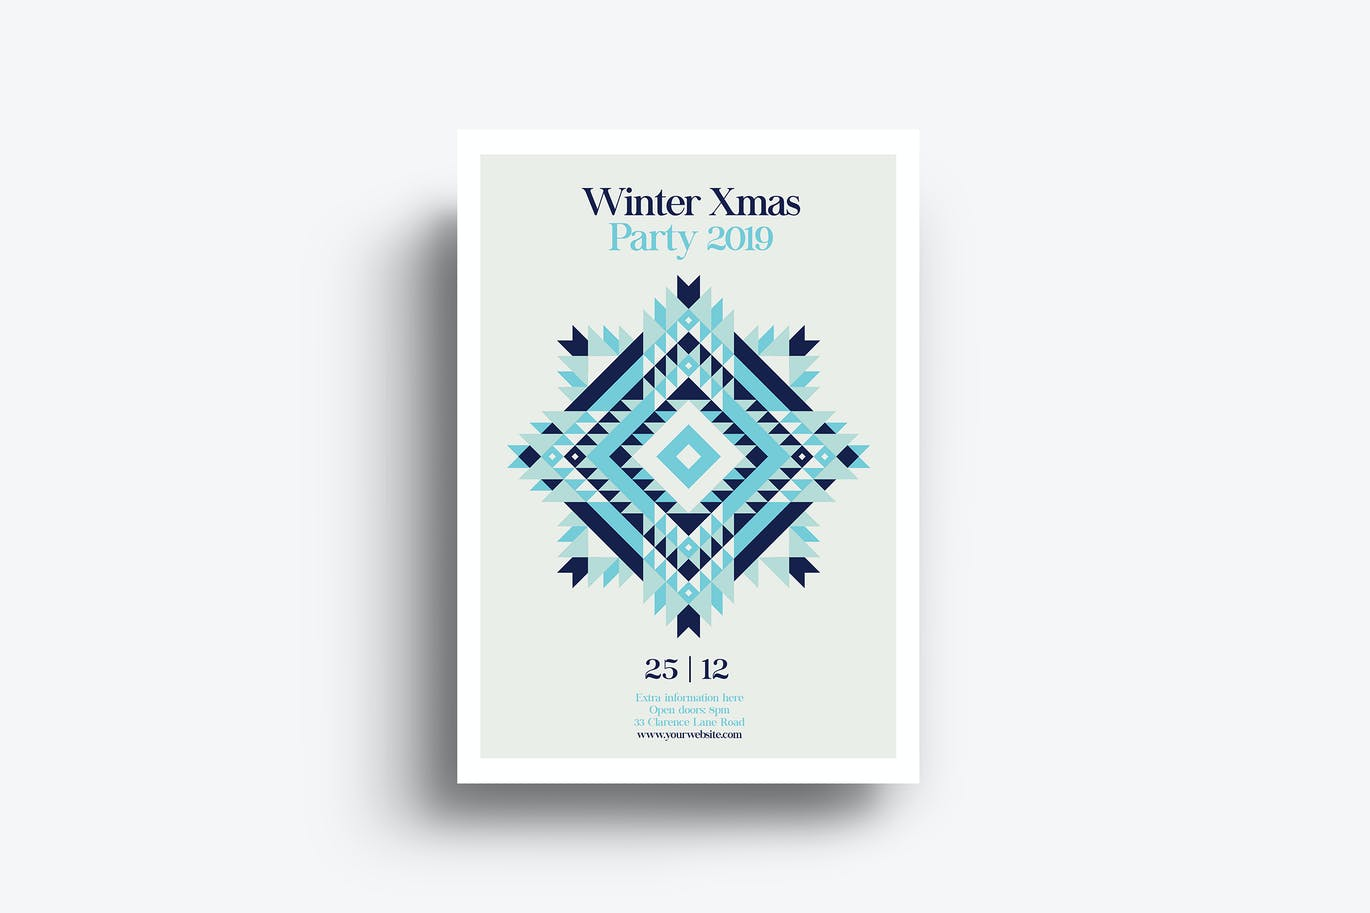 Minimal Winter Xmas Party Flyer